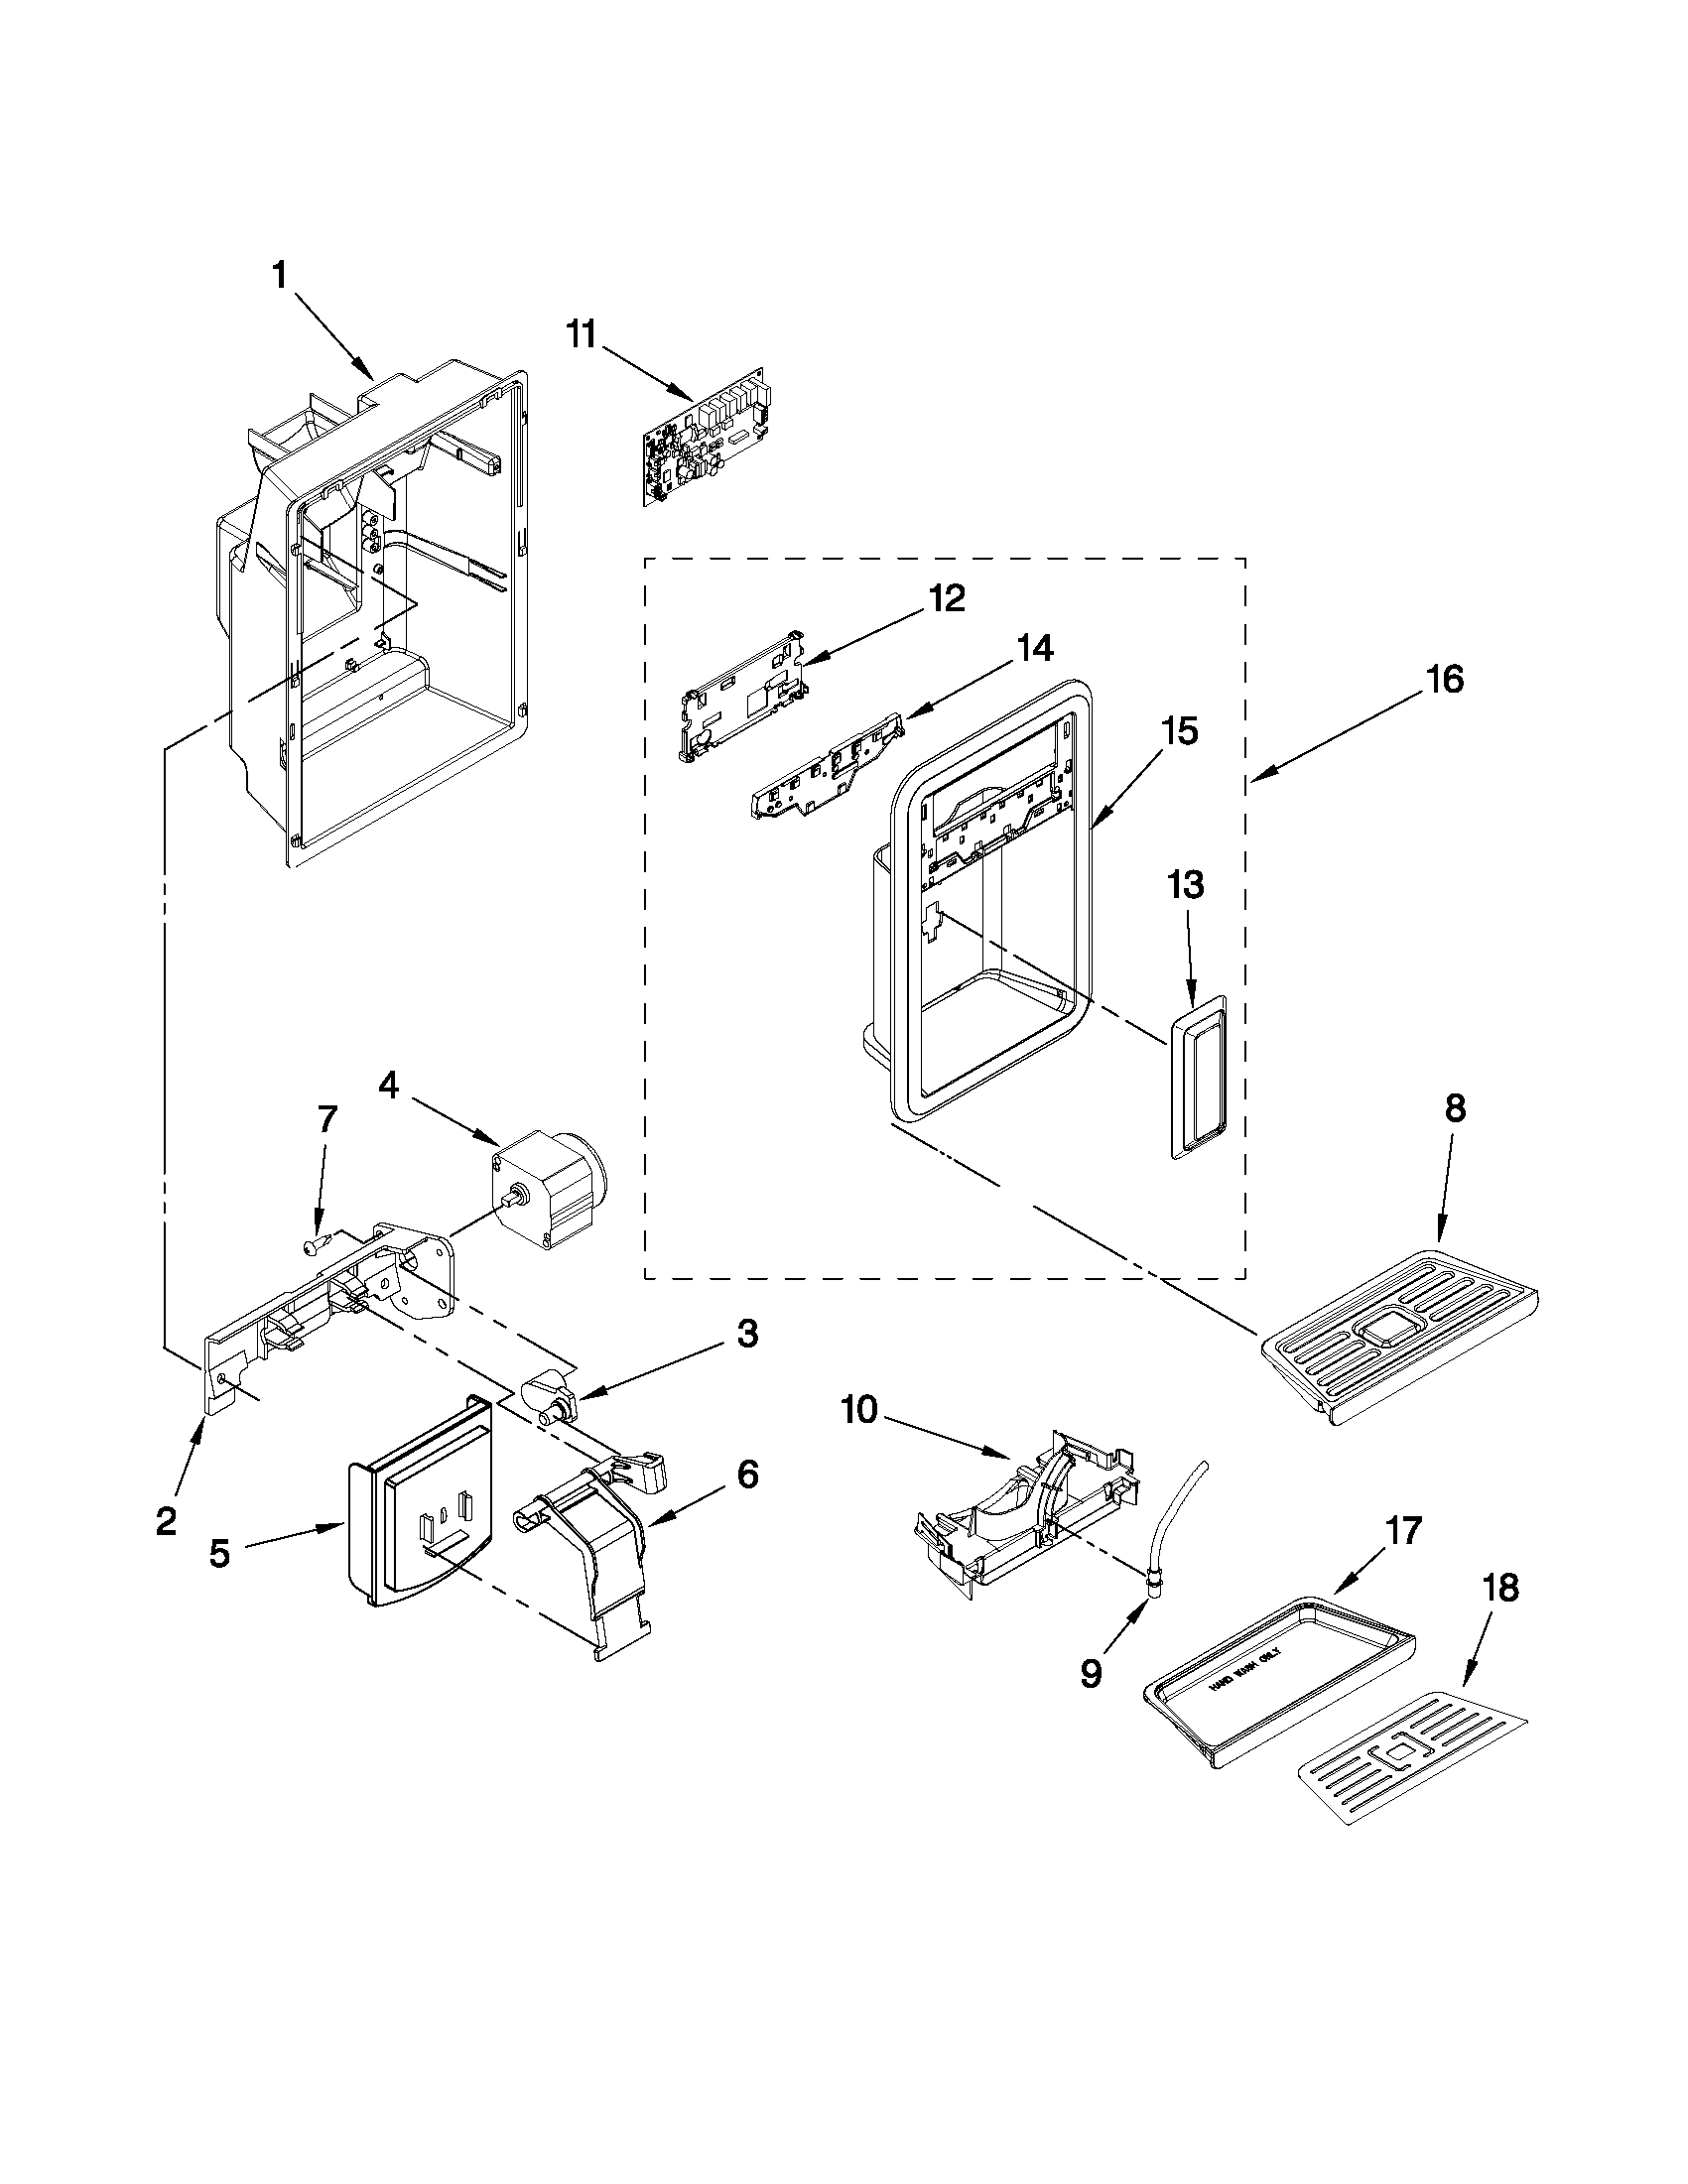 DISPENSER FRONT PARTS Diagram & Parts List for Model